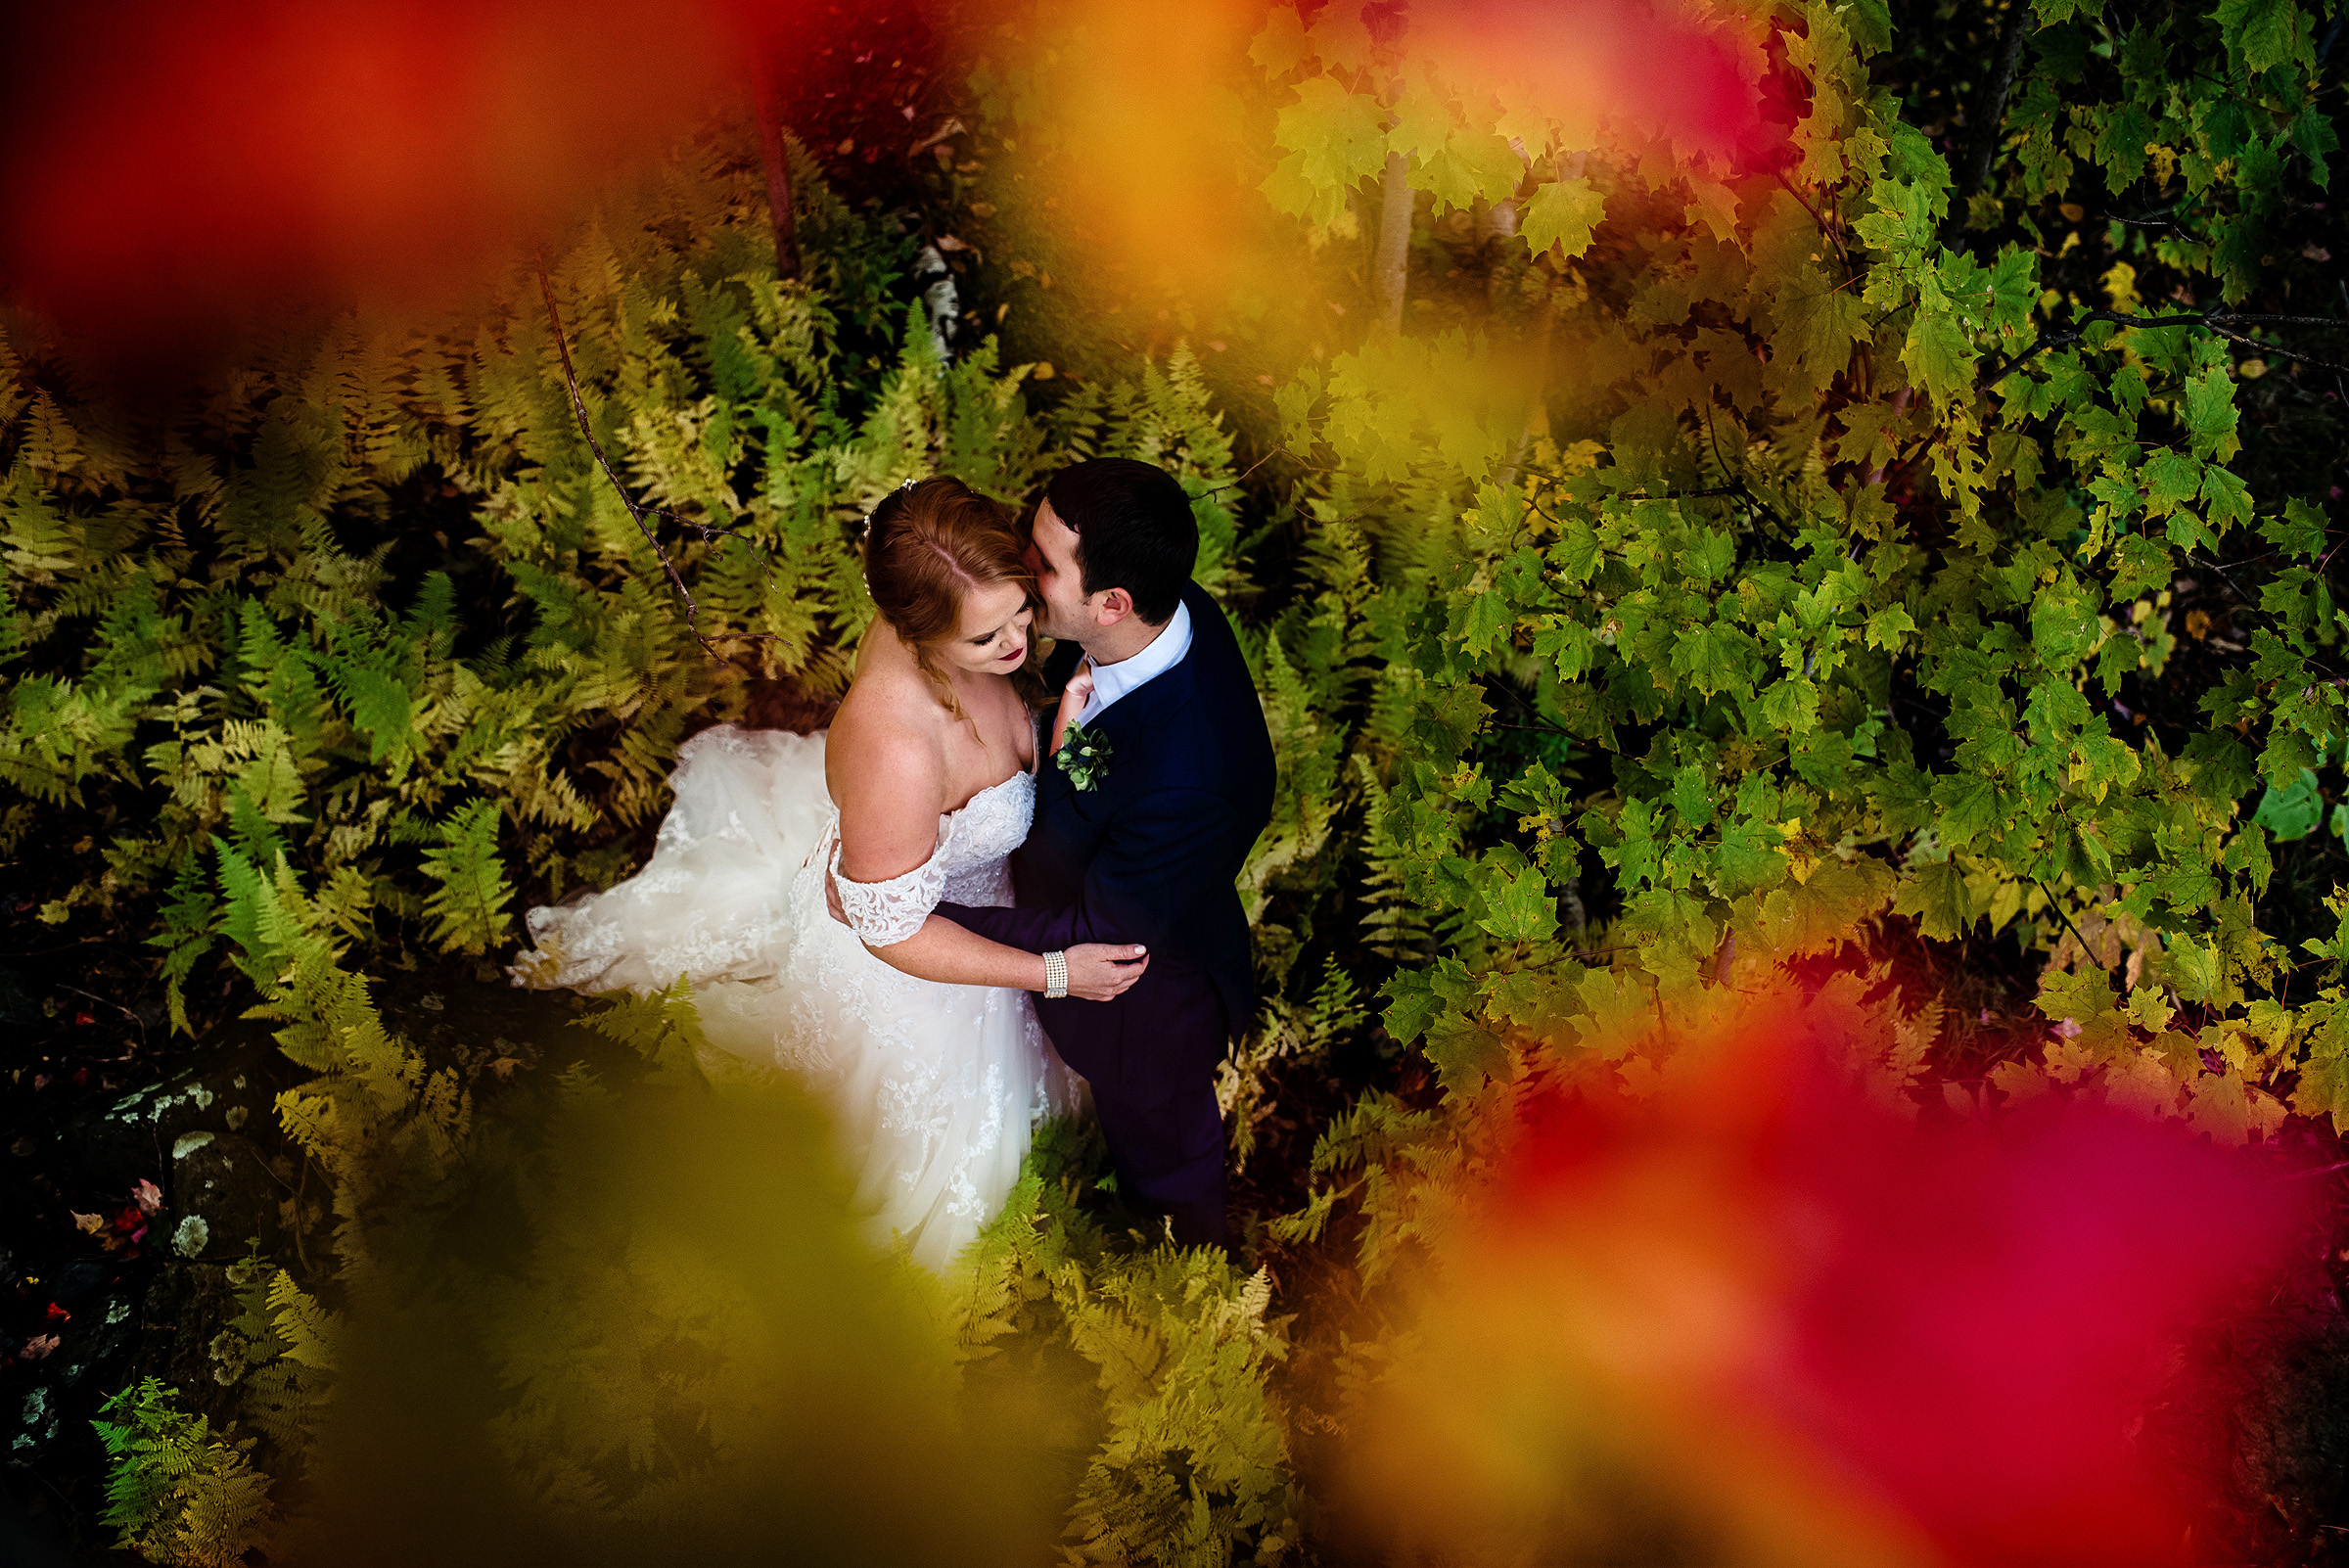 bride and groom portrait under the colorful fall leaves- photo by Hannah Photography